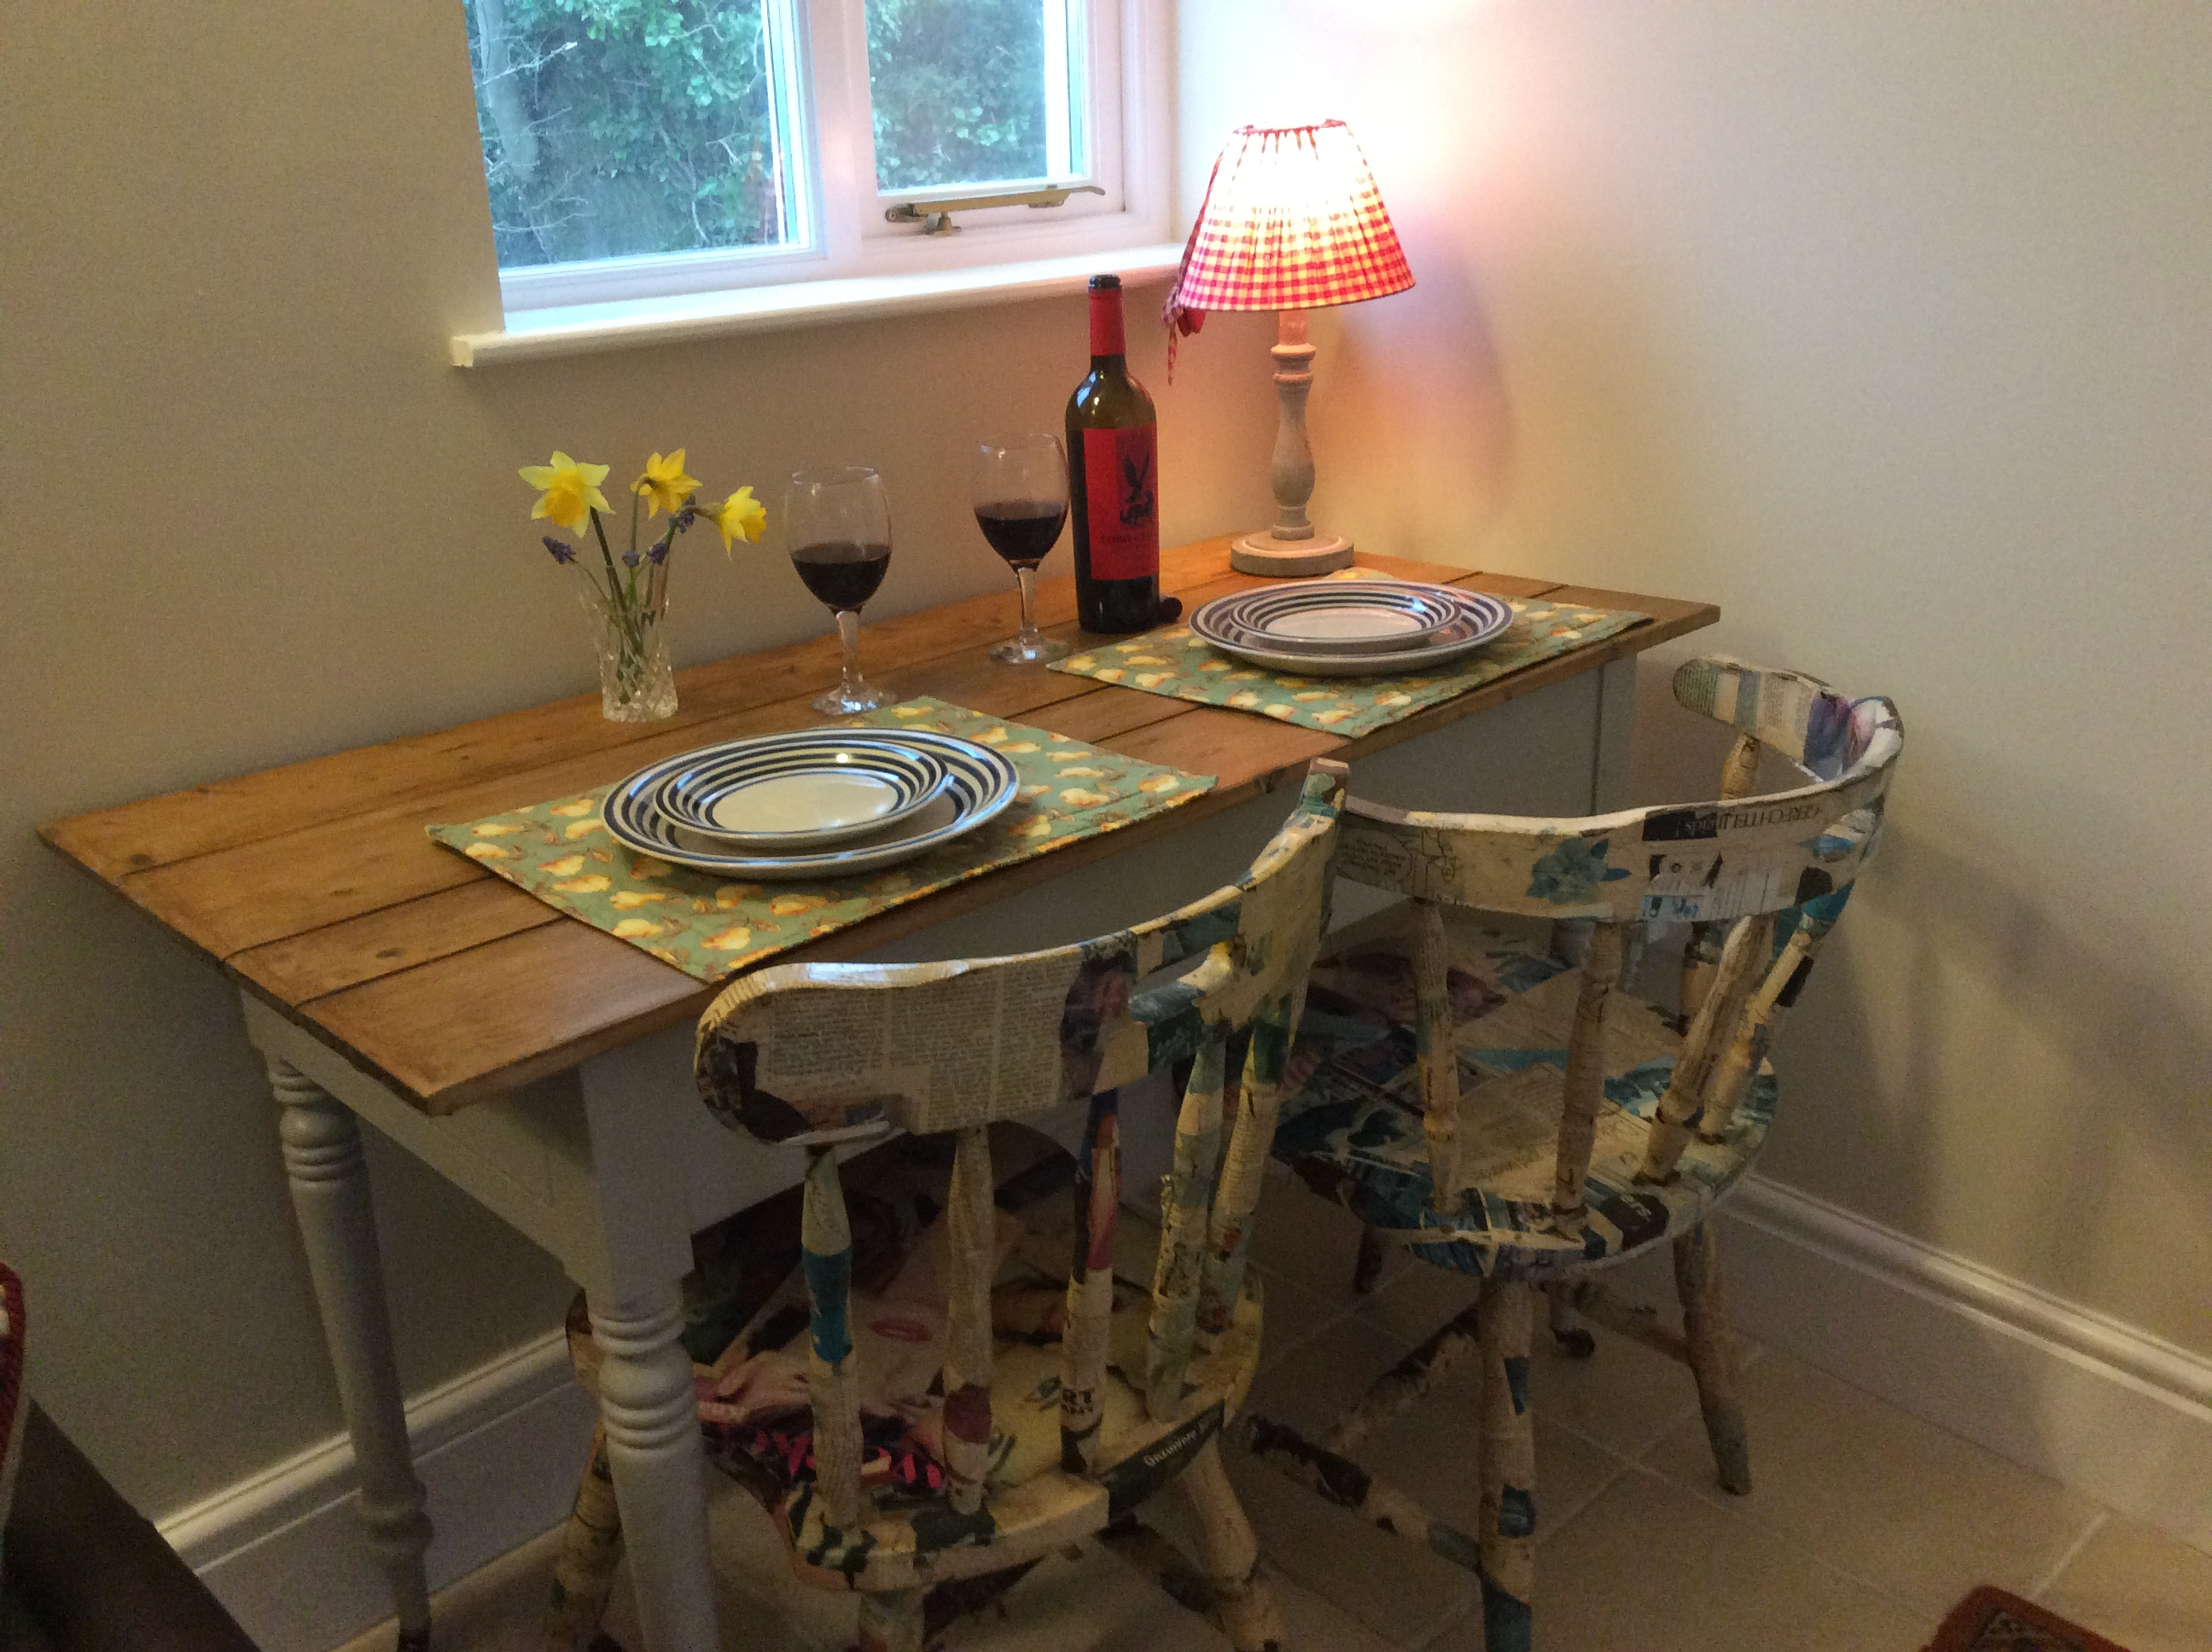 Upcycled dining table & chairs